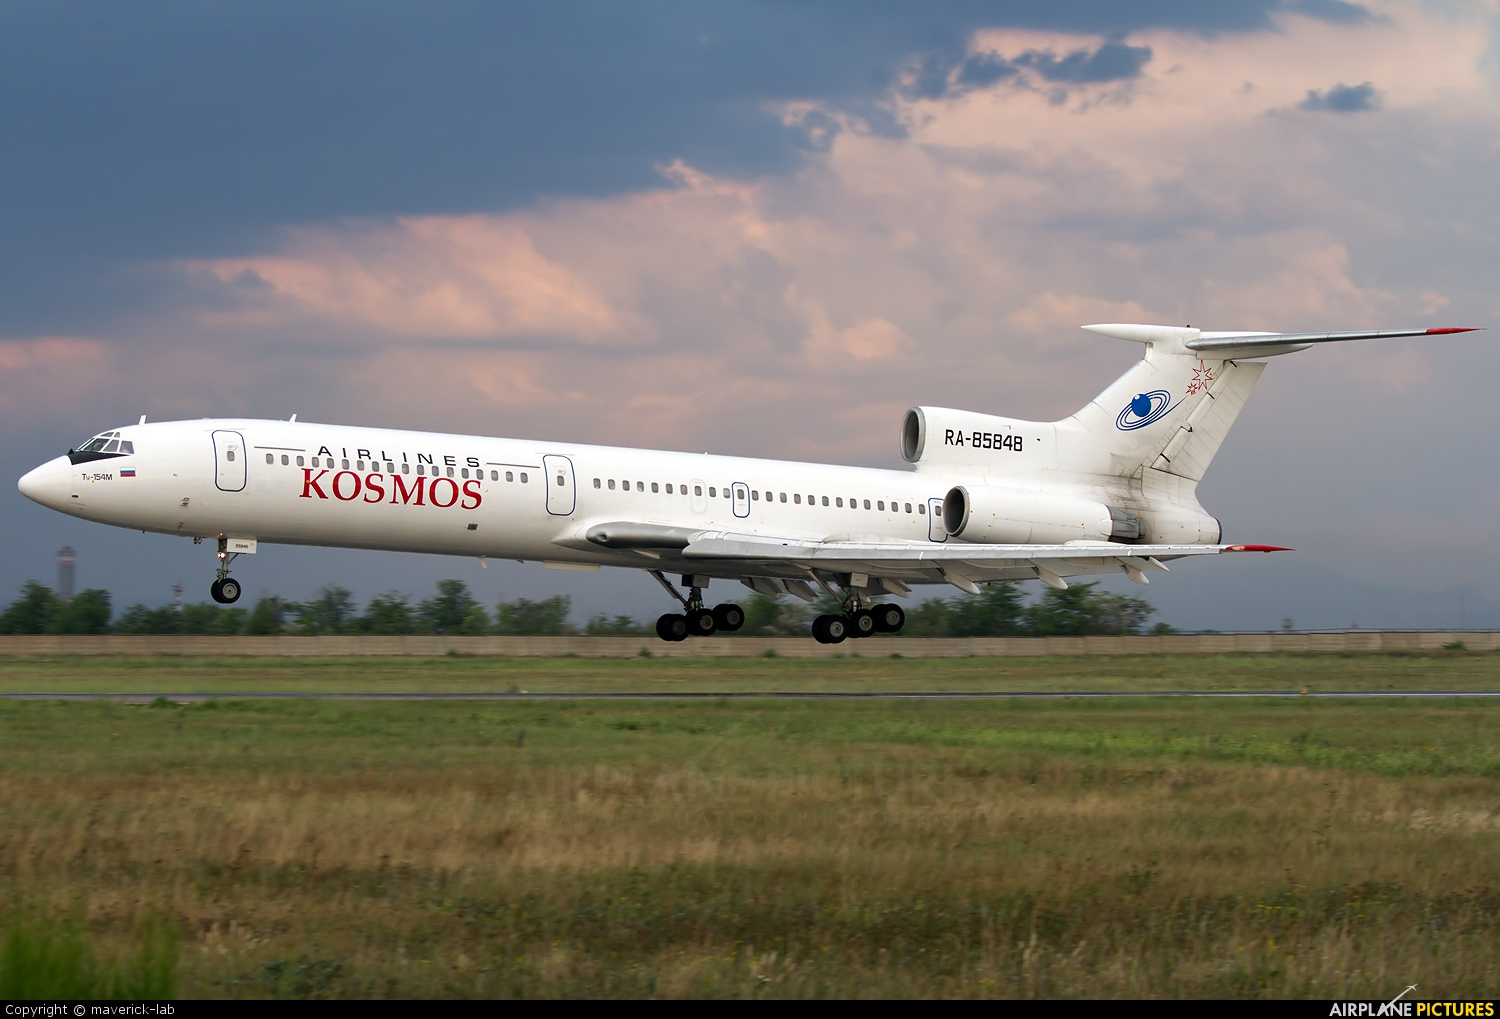 Kosmos Airlines RA-85848 aircraft at Simferopol International Airport (under Russian occupation)